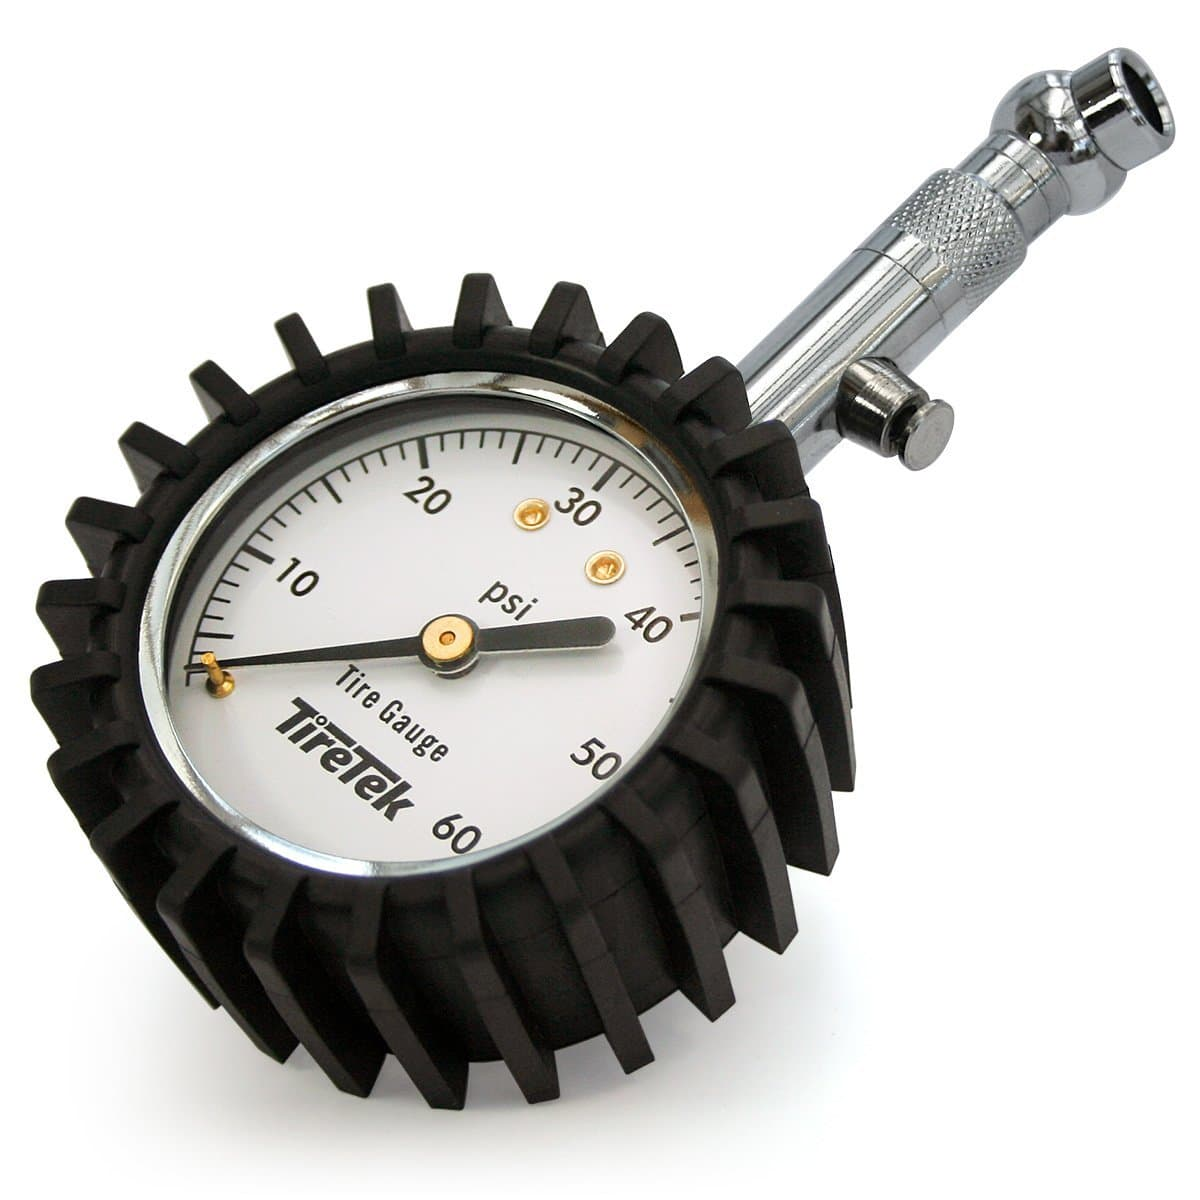 Tire Inflators with Gauges & Tire Gauges